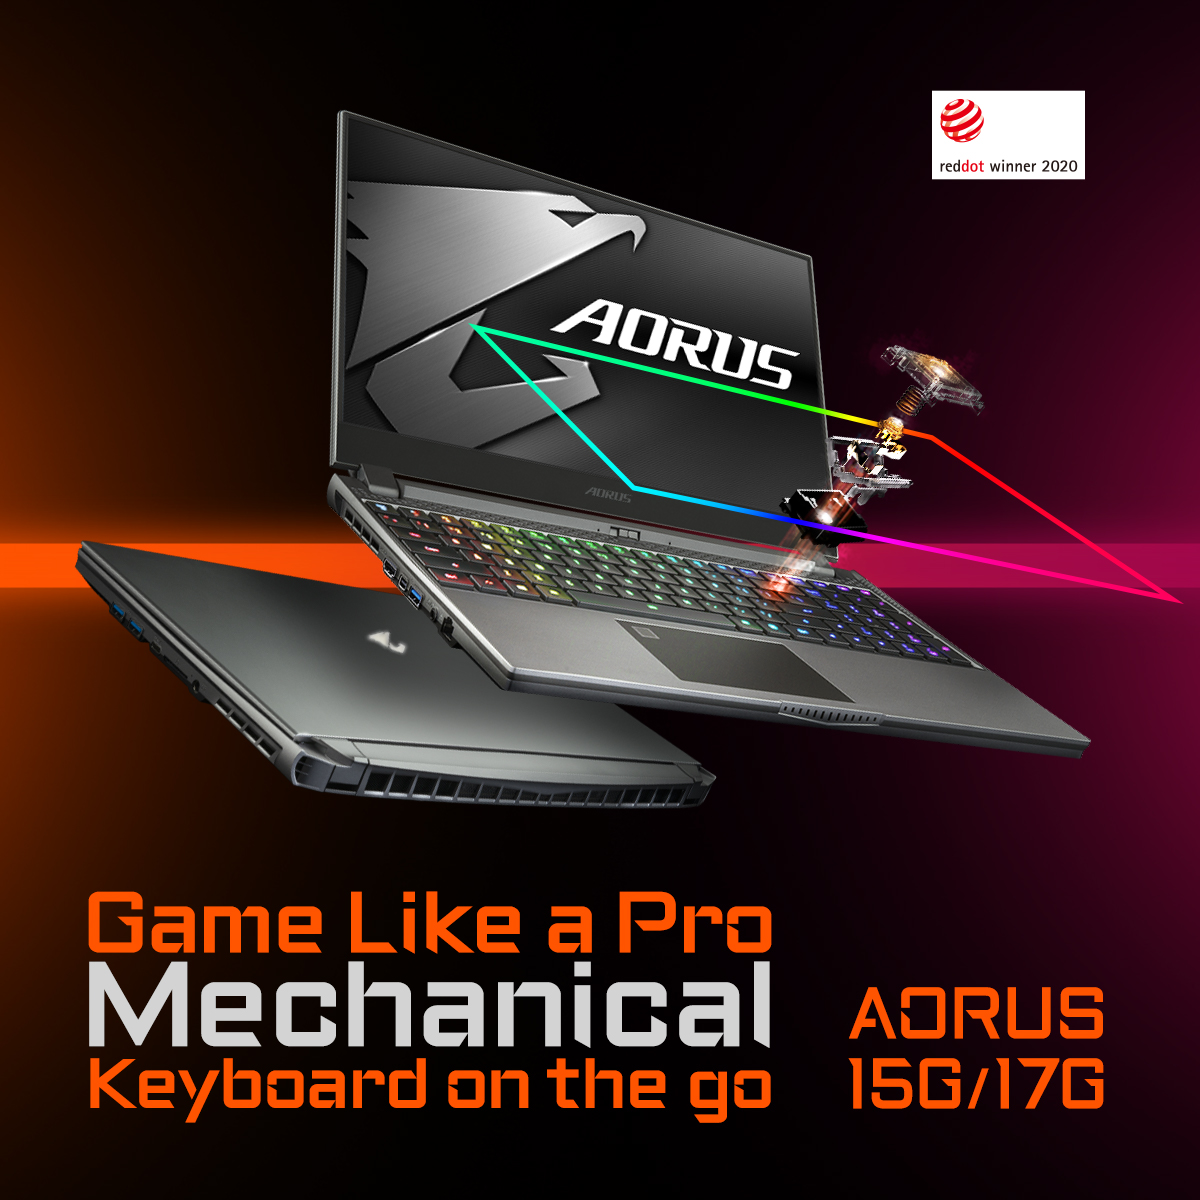 AORUS: Innovative Design X Professional Gaming Laptop  Learn more: AORUS 15G: https://bit.ly/2xqNLa8   AORUS 17G: https://bit.ly/39mzp83   #aorus #aorusgaming #aorus17G #aorus15G #gaminglaptop #pcgaming #pcgamer #gaming #laptoppic.twitter.com/xxFc3uS5Z3